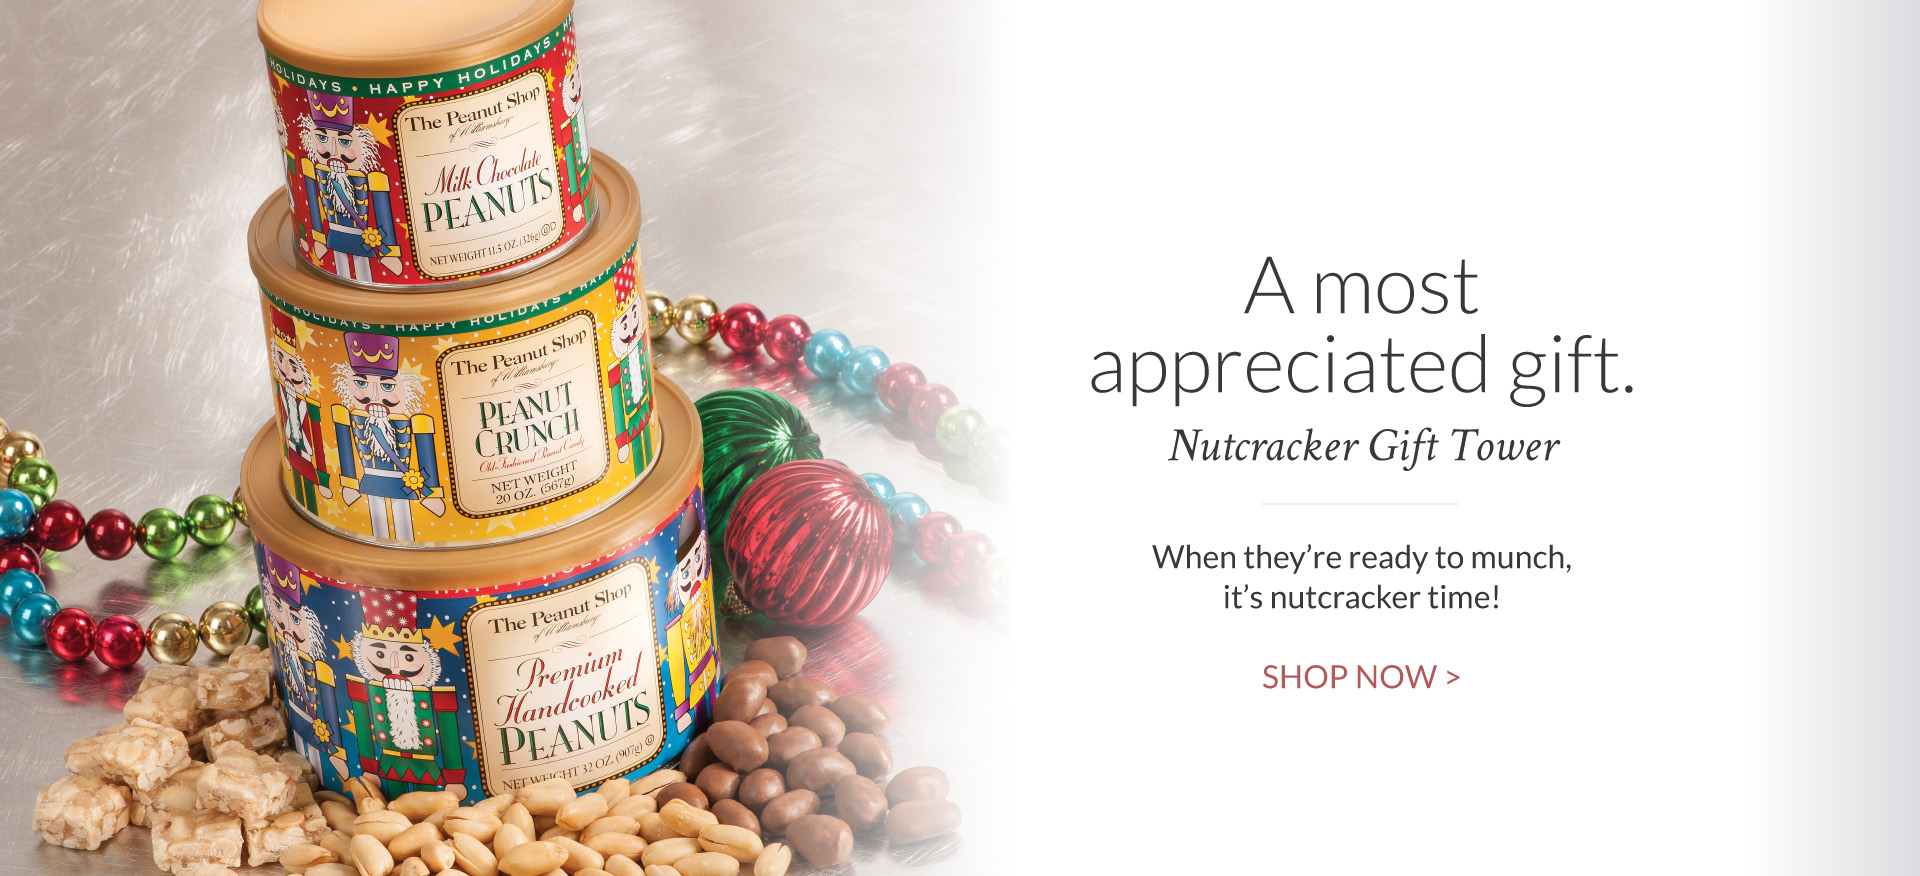 Nutcracker Peanut Tower - The Peanut Shop of Williamsburg